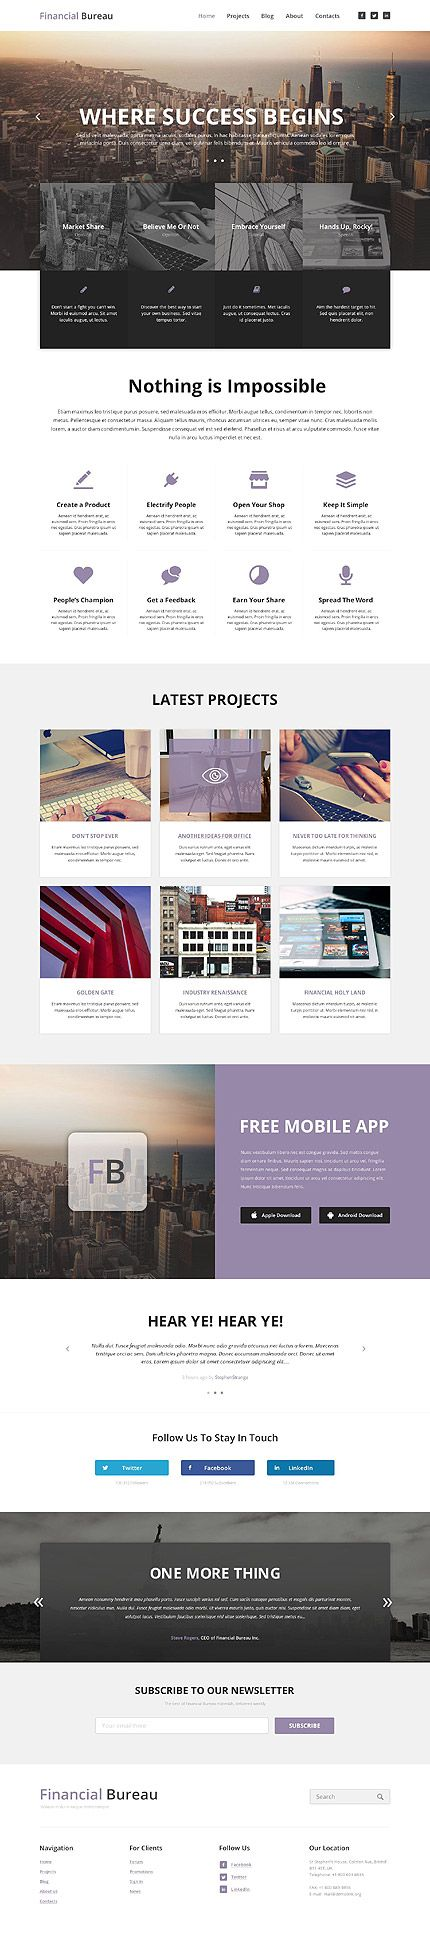 Design Needs Time - Get Template Espresso! That's WordPress #template // Regular price: $68 // Unique price: $4500 // Sources available: .PSD, .PHP, This theme is widgetized #Business #Most Popular #WordPress